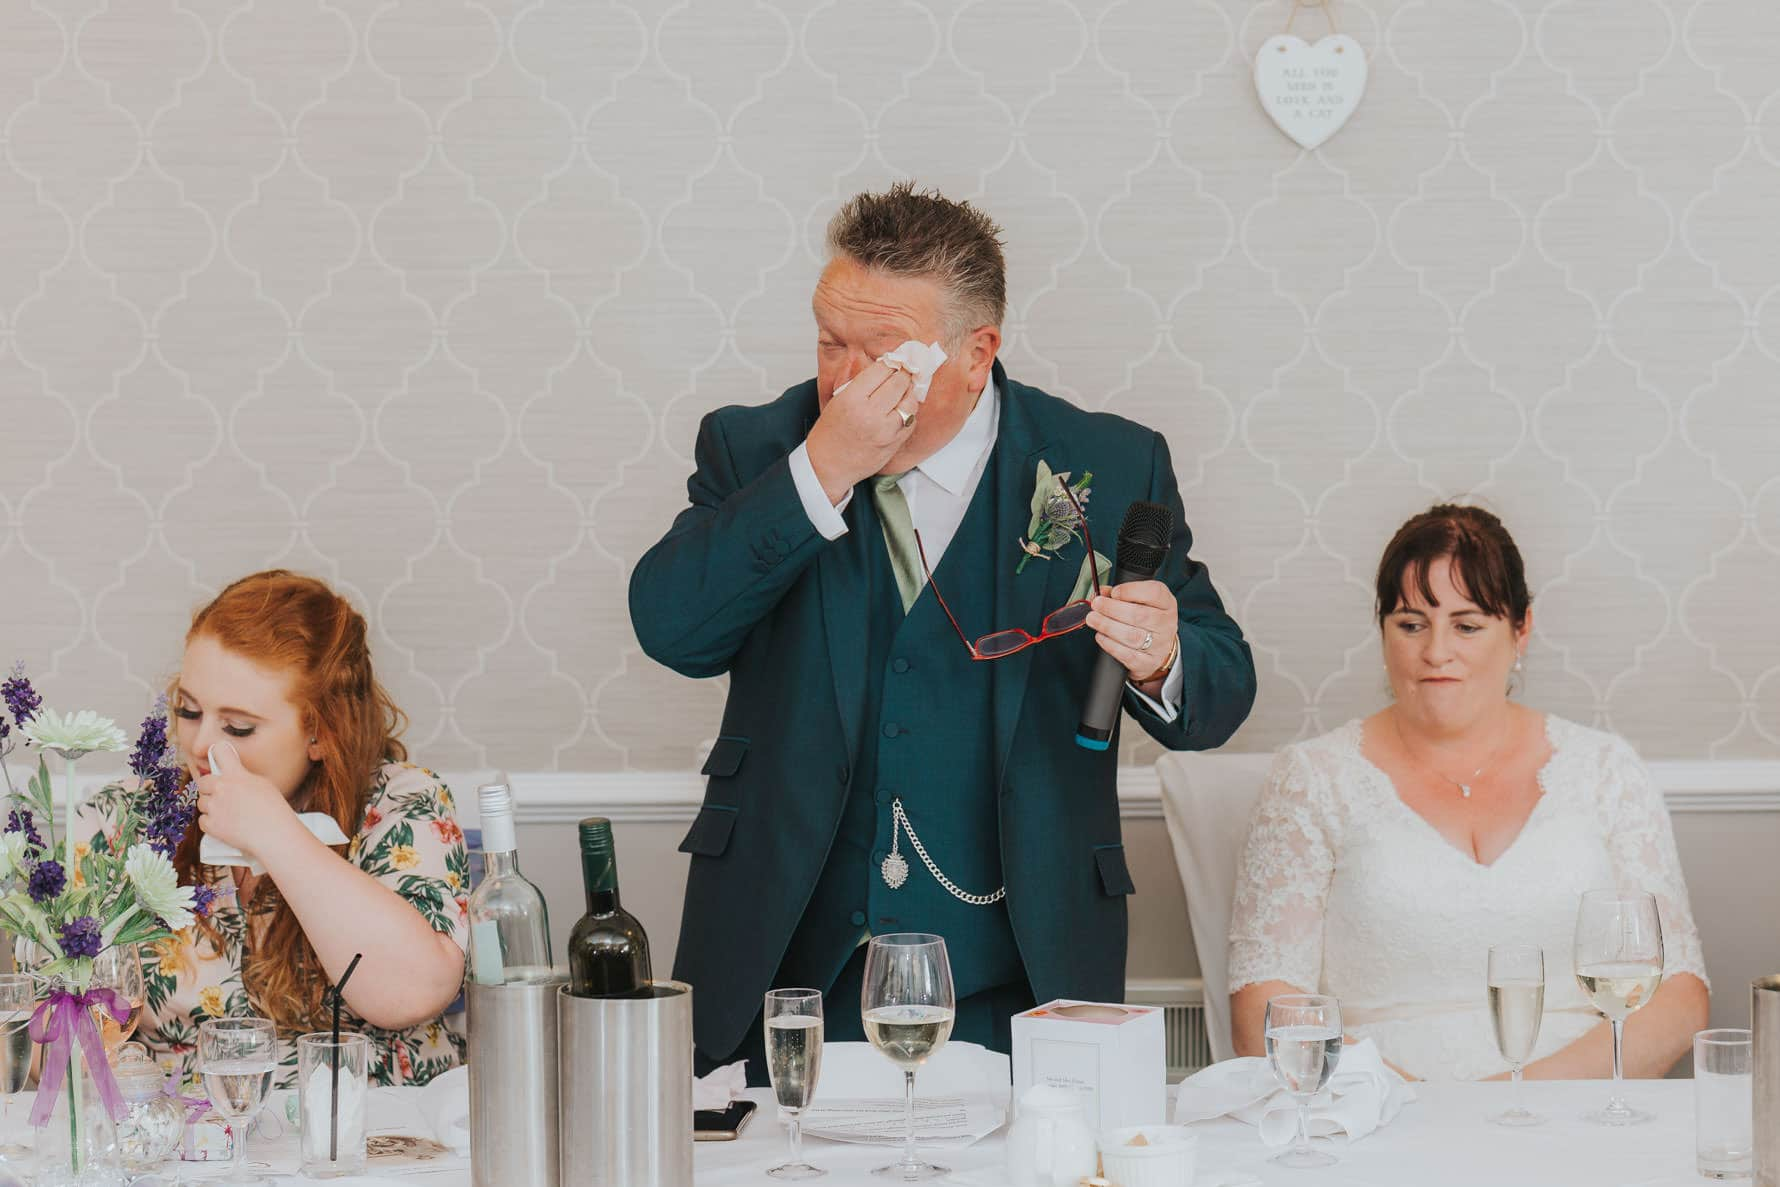 A groom drying his tears while making a speech